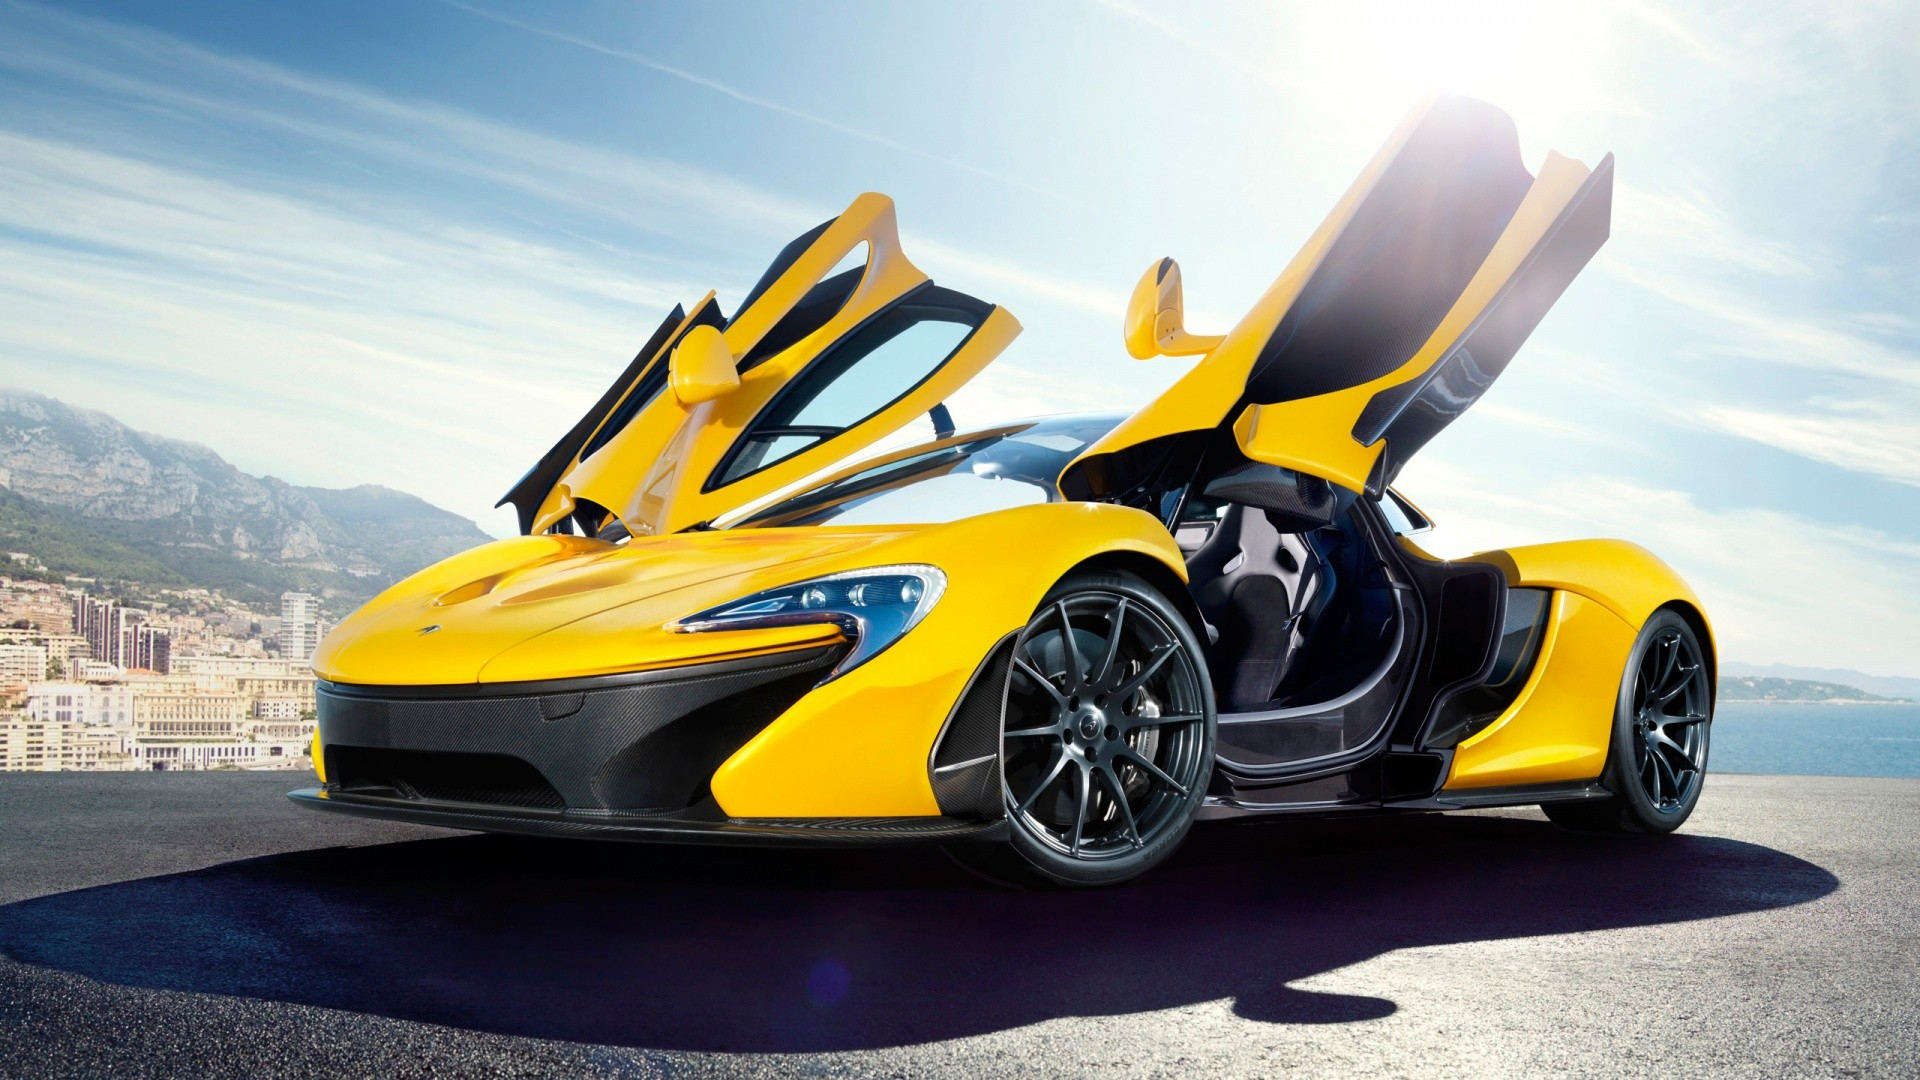 Cars Wallpaper ·① Download Free Awesome Full HD